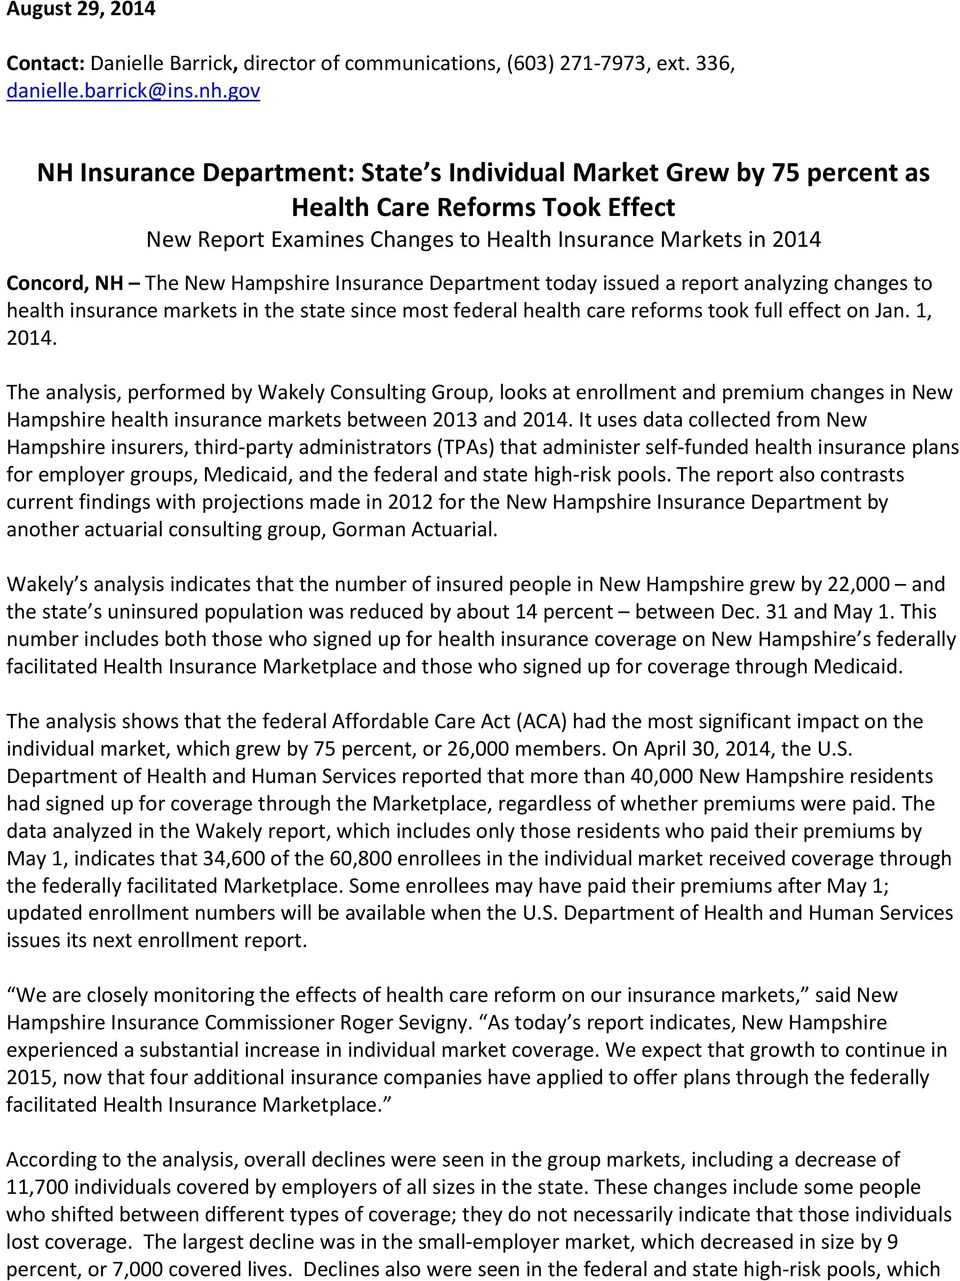 Hampshire Insurance Department today issued a report analyzing changes to health insurance markets in the state since most federal health care reforms took full effect on Jan. 1, 2014.